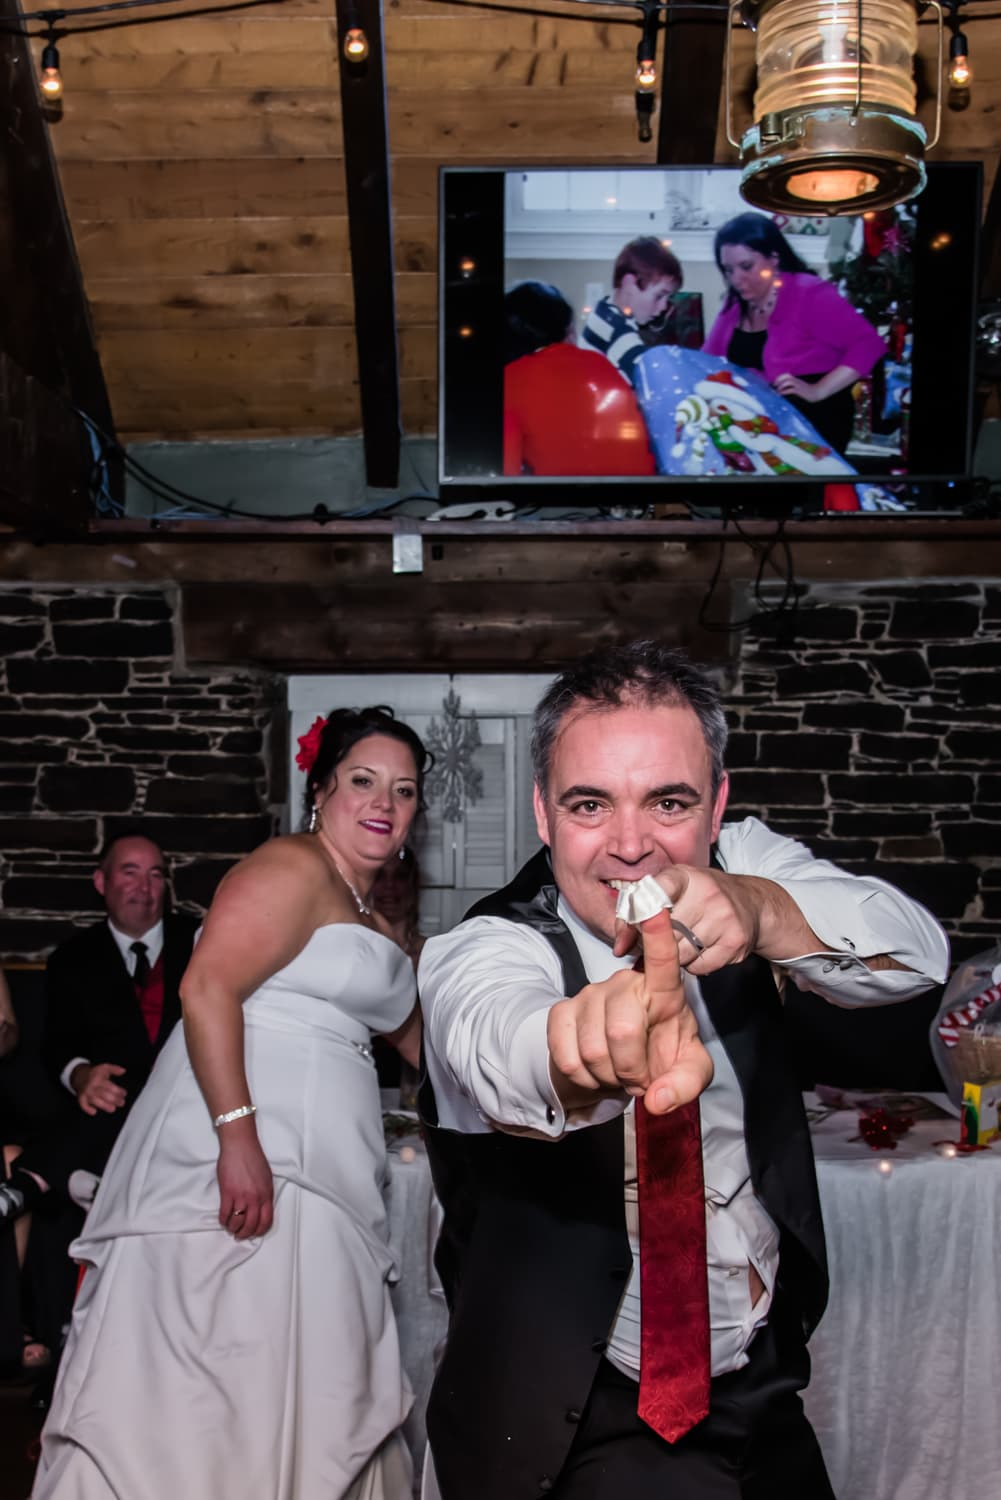 halifax ns wedding photographer, halifax wedding photographers, halifax engagement photographer, engaged, sandra adamson studios, lower deck, taproom, wedding reception, garter toss, bride, groom